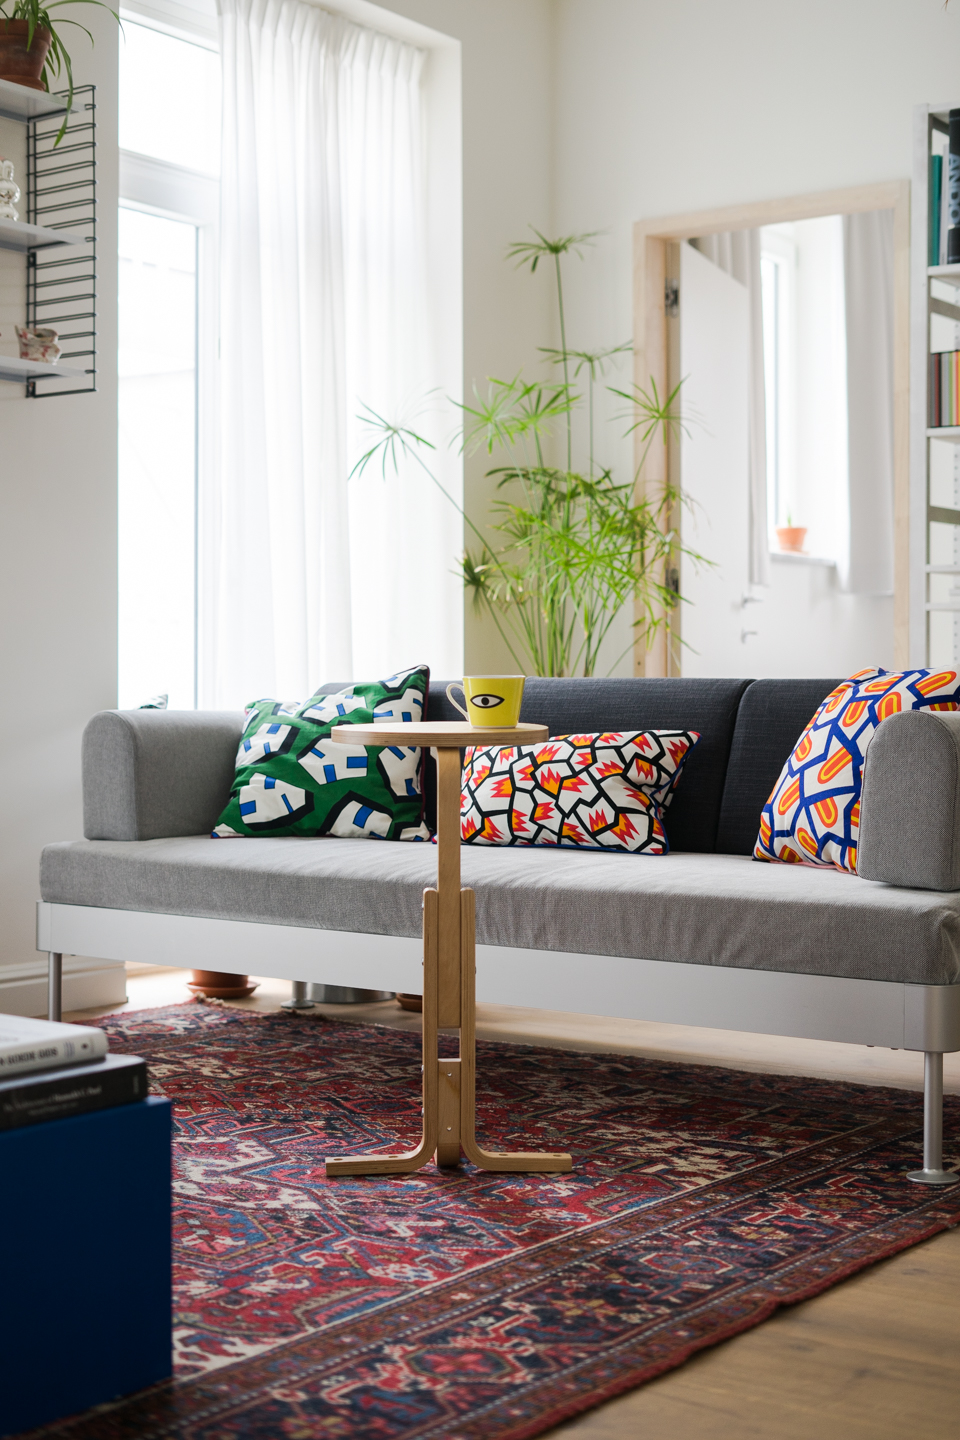 IKEA, Delaktig, interior, sofa, Tom Dixon